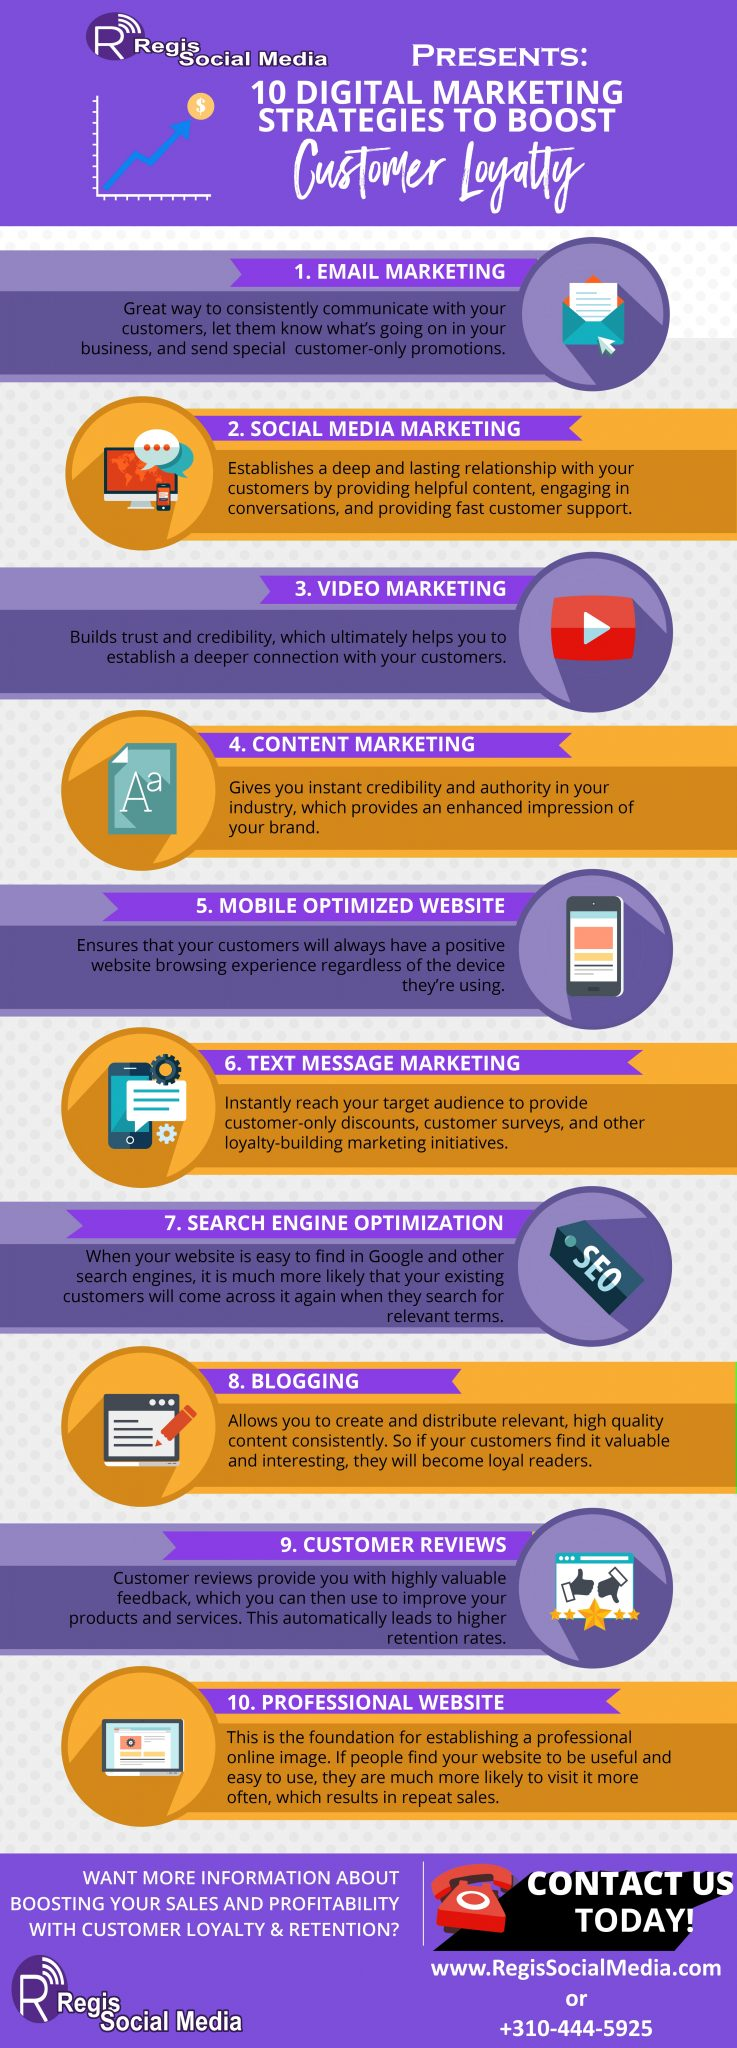 10-digital-marketing-methods-to-increase-customer-loyalty